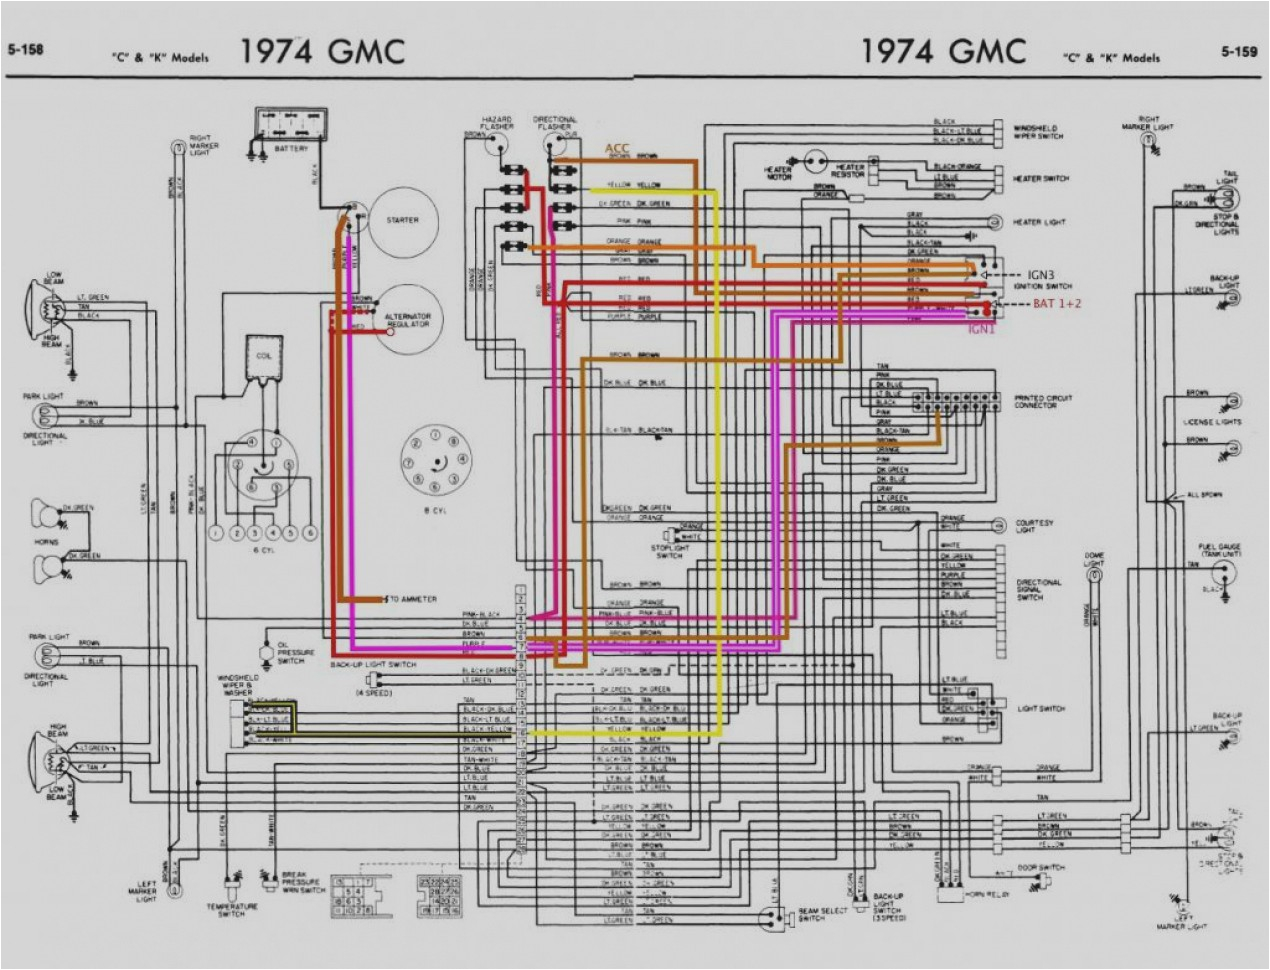 1971 chevy truck wiring diagram awesome 74 chevy truck wiring diagram wiring center e280a2 of 1971 chevy truck wiring diagram jpg